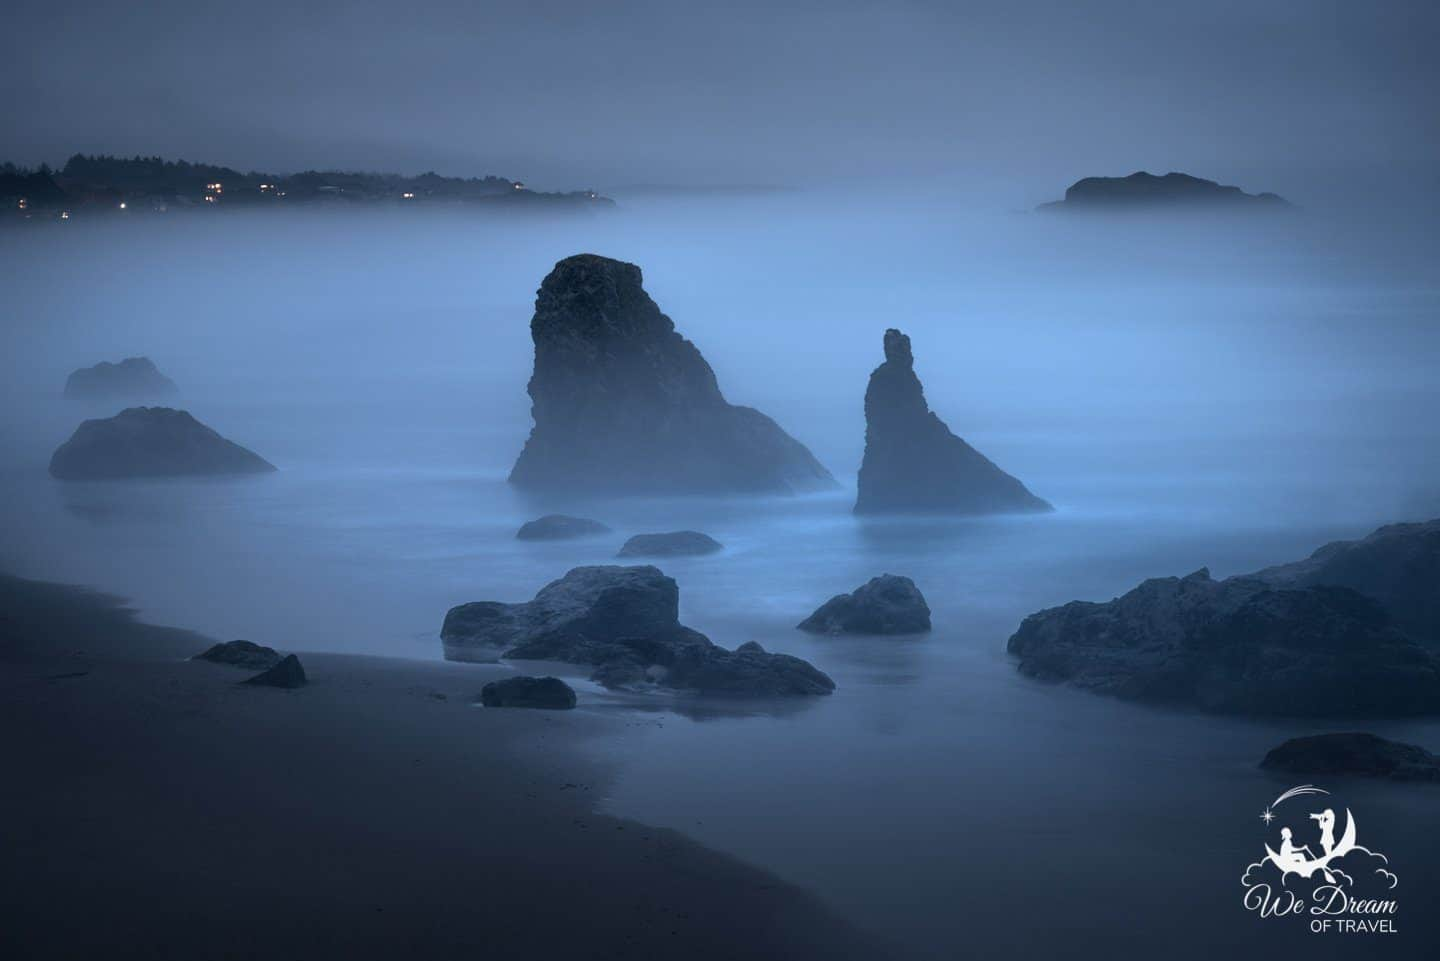 Misty blue hour photography of the sea stacks in bandon Oregon